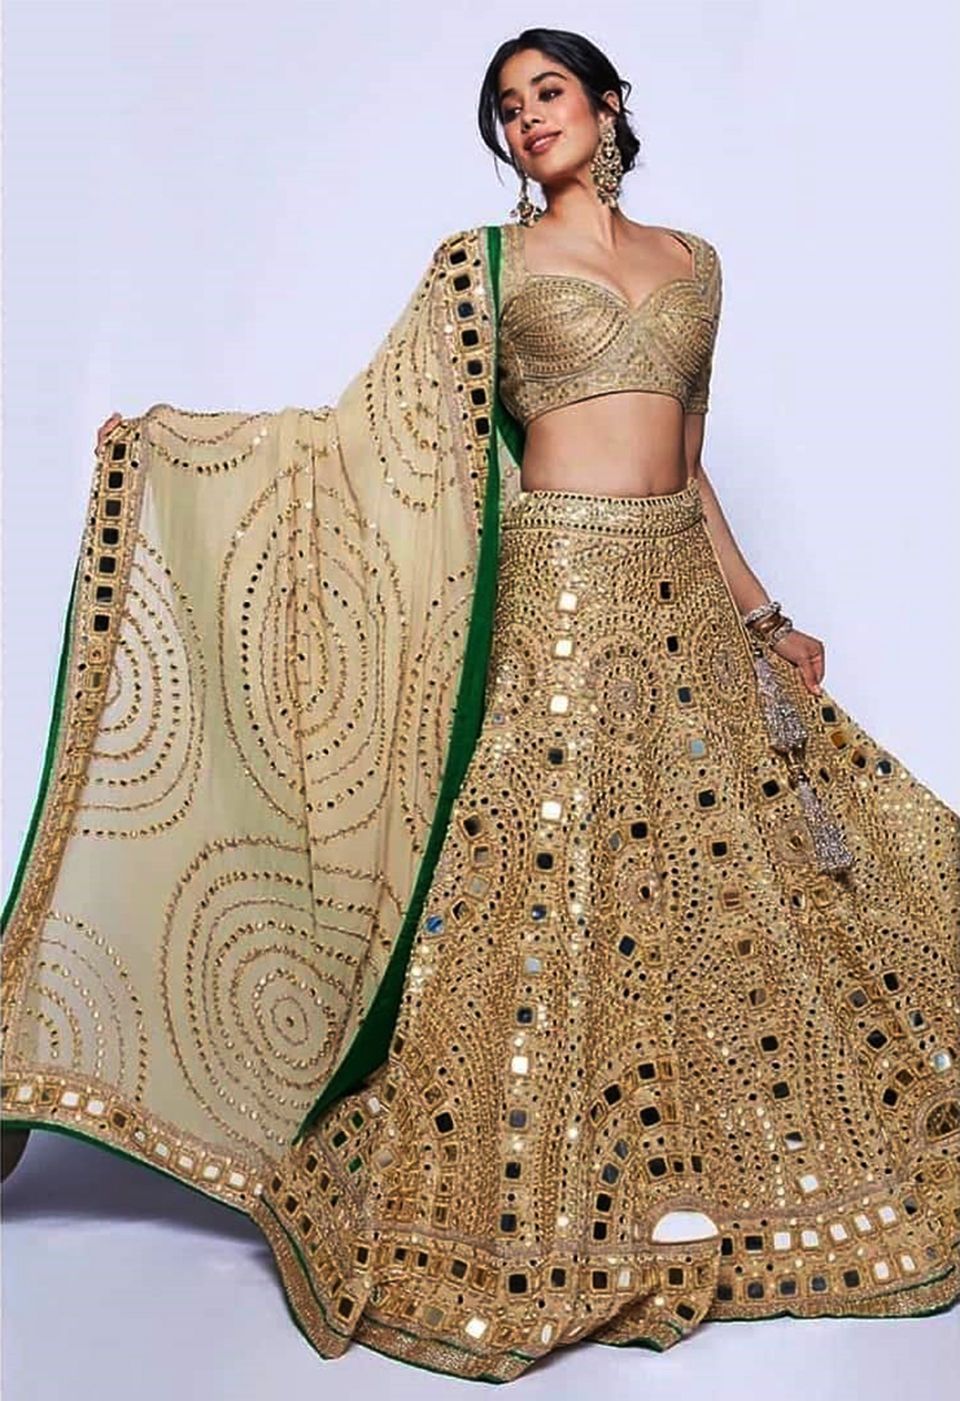 Dazzlerr: Iconic Designer Duo of Bollywood- Abu Jani Sandeep Khosla